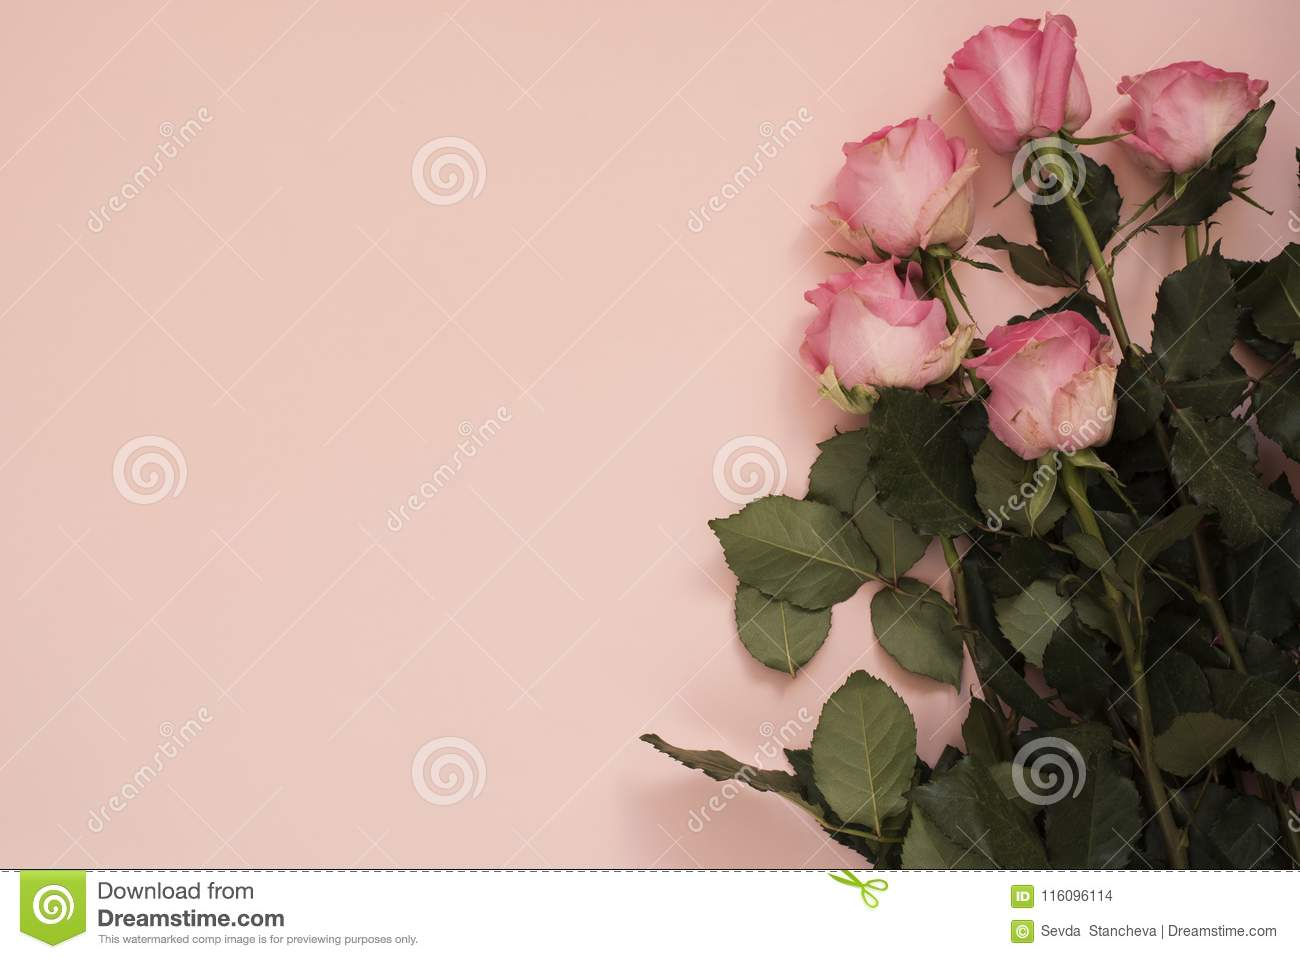 Stunning Pink Bouquet Of Roses On Punchy Pink Background. Copy Space ...